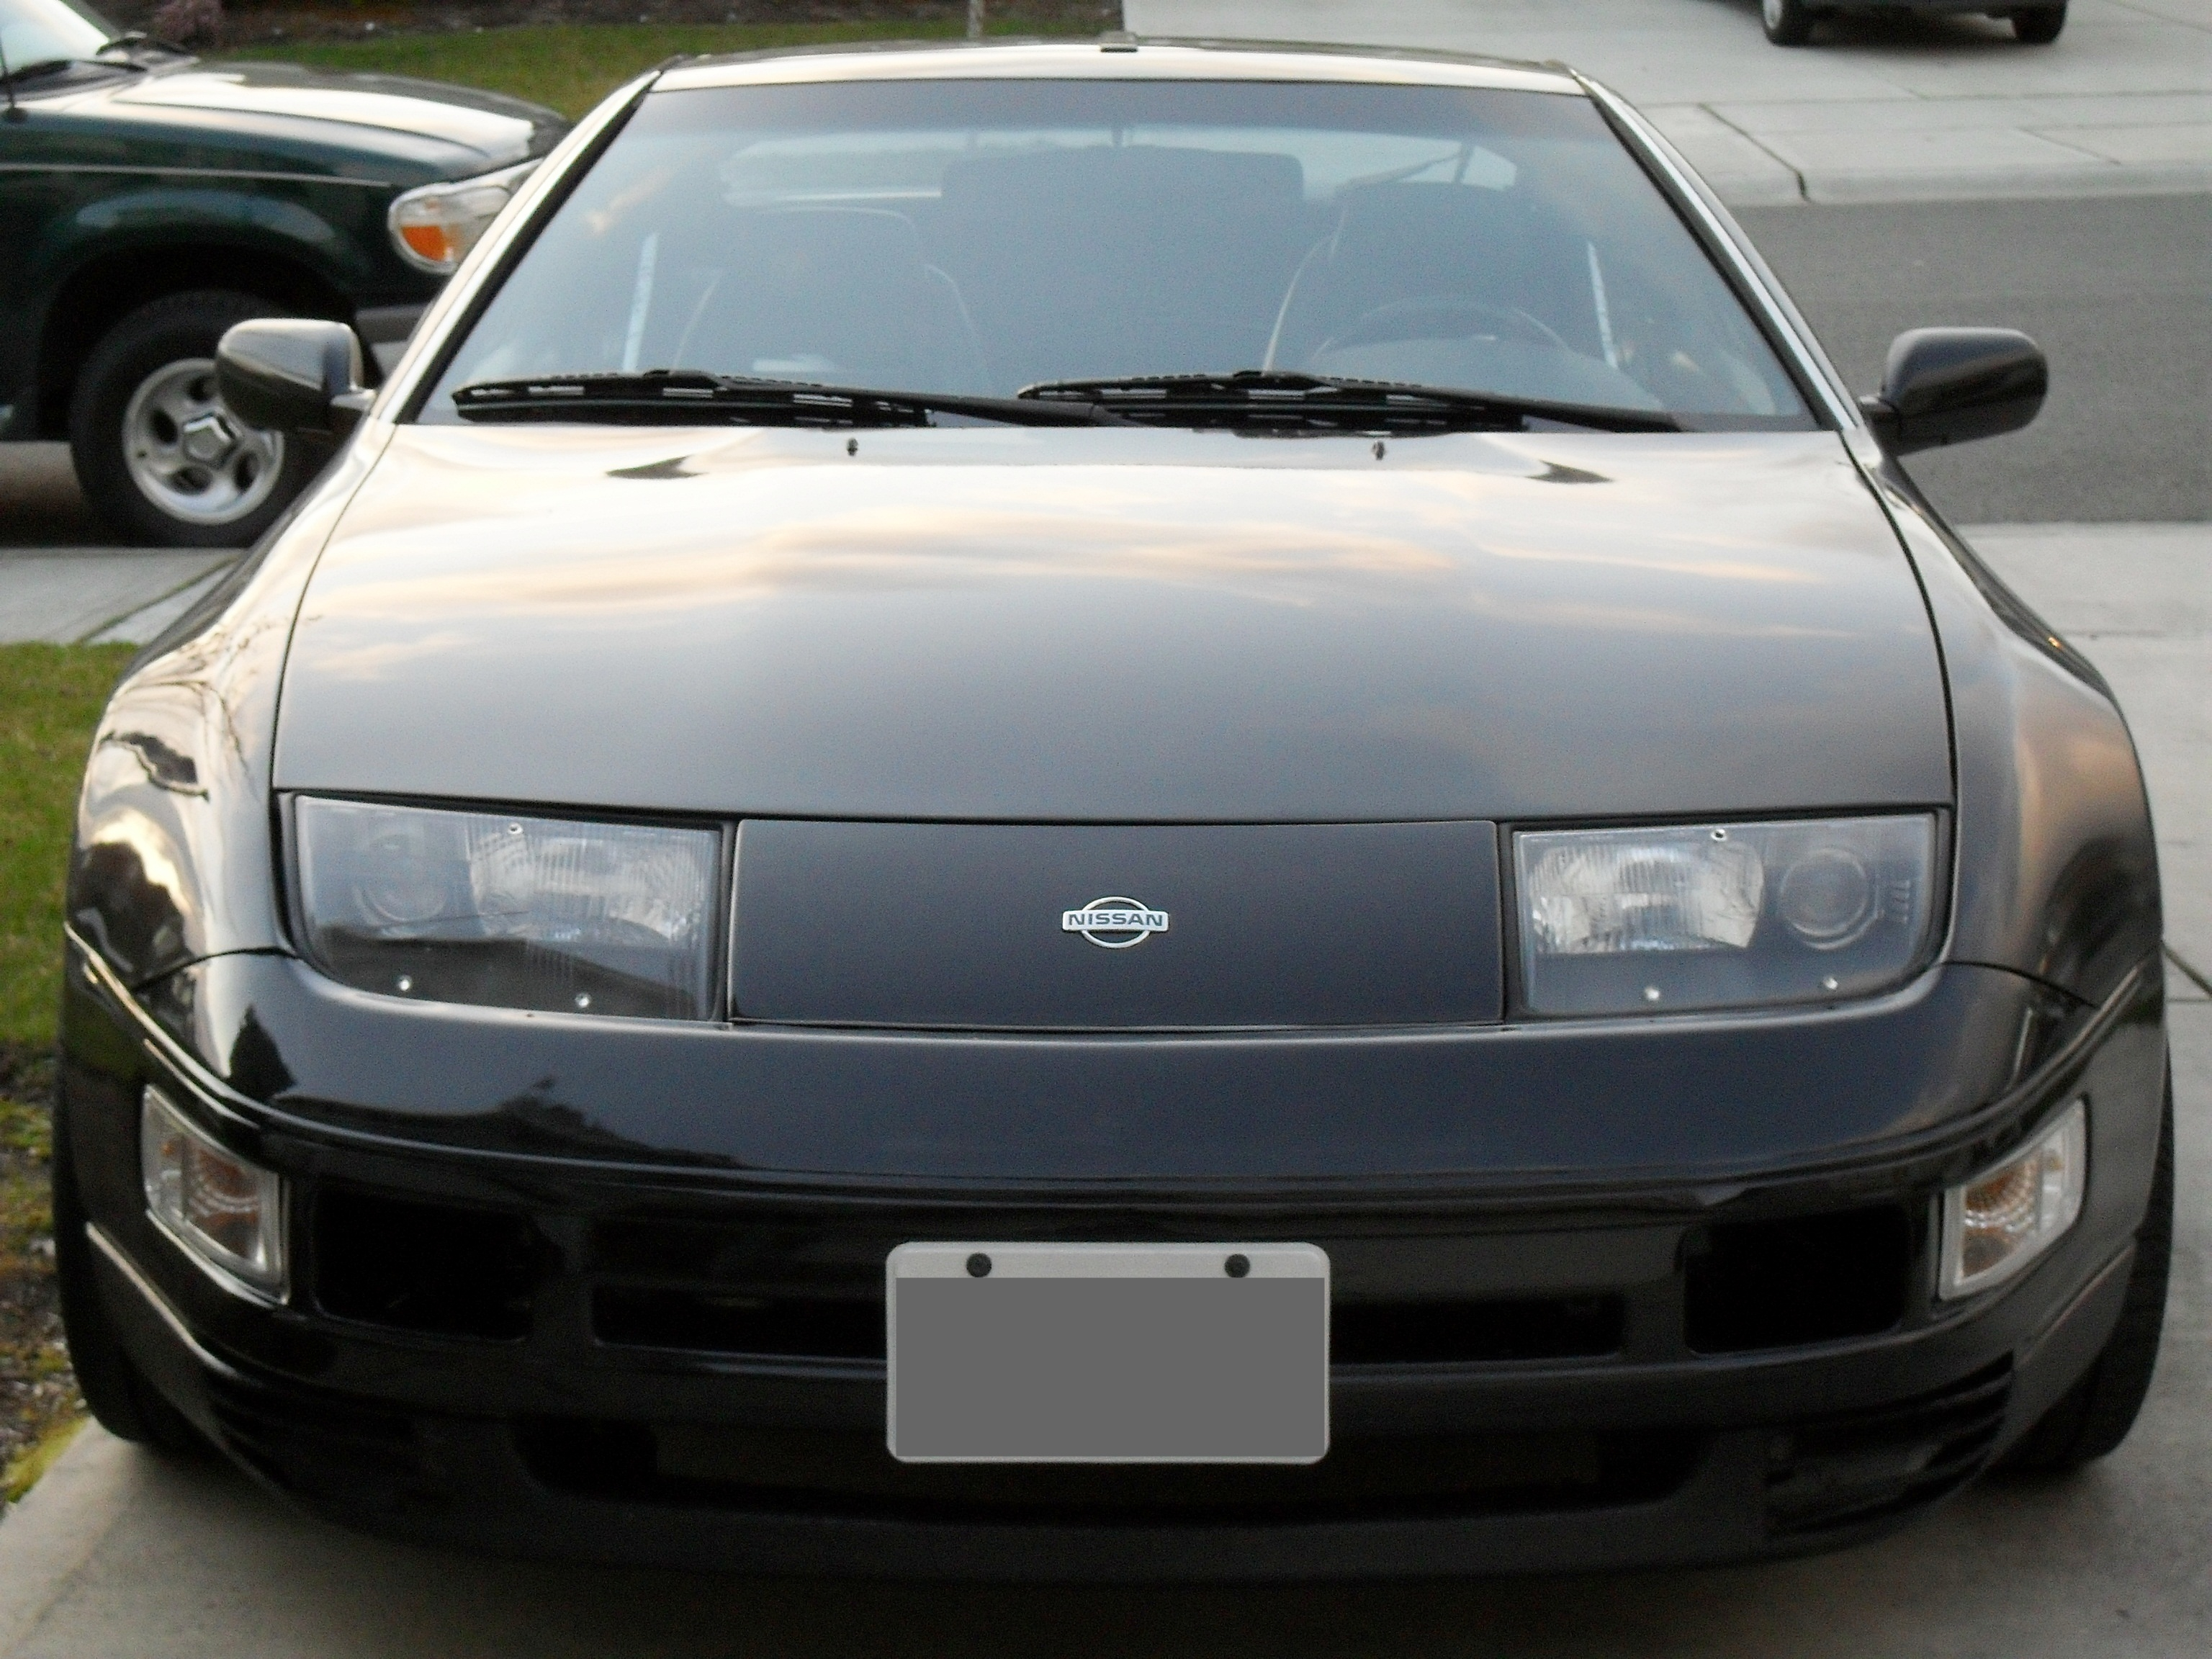 ron z tt 1993 nissan 300zx specs photos modification info at cardomain. Black Bedroom Furniture Sets. Home Design Ideas